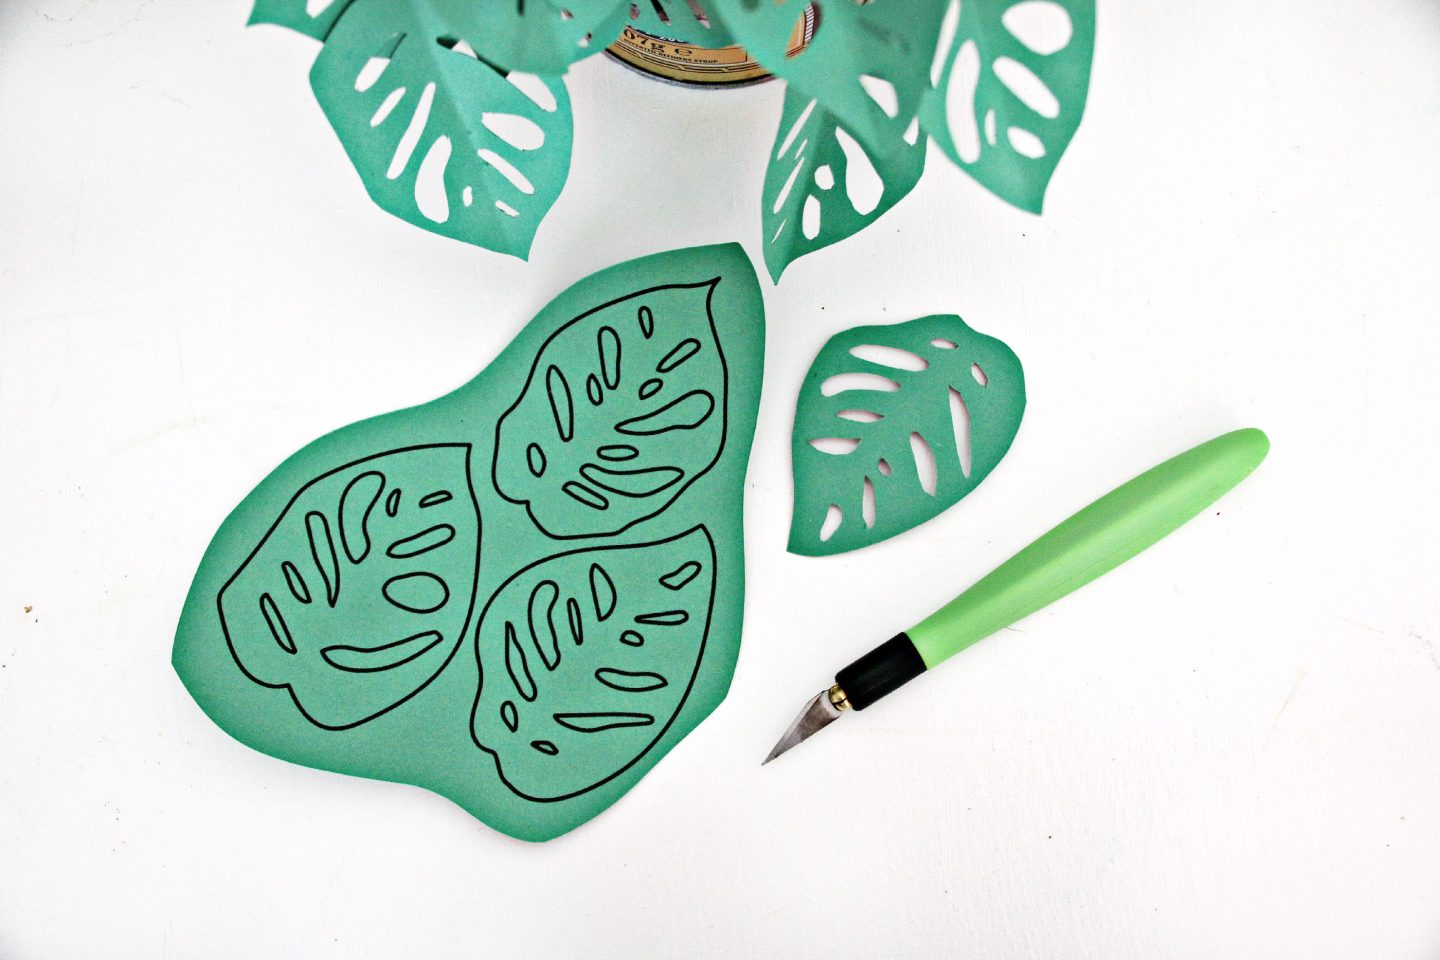 DIY make Your Own Paper Plant #WayfairDIY Together at home 3